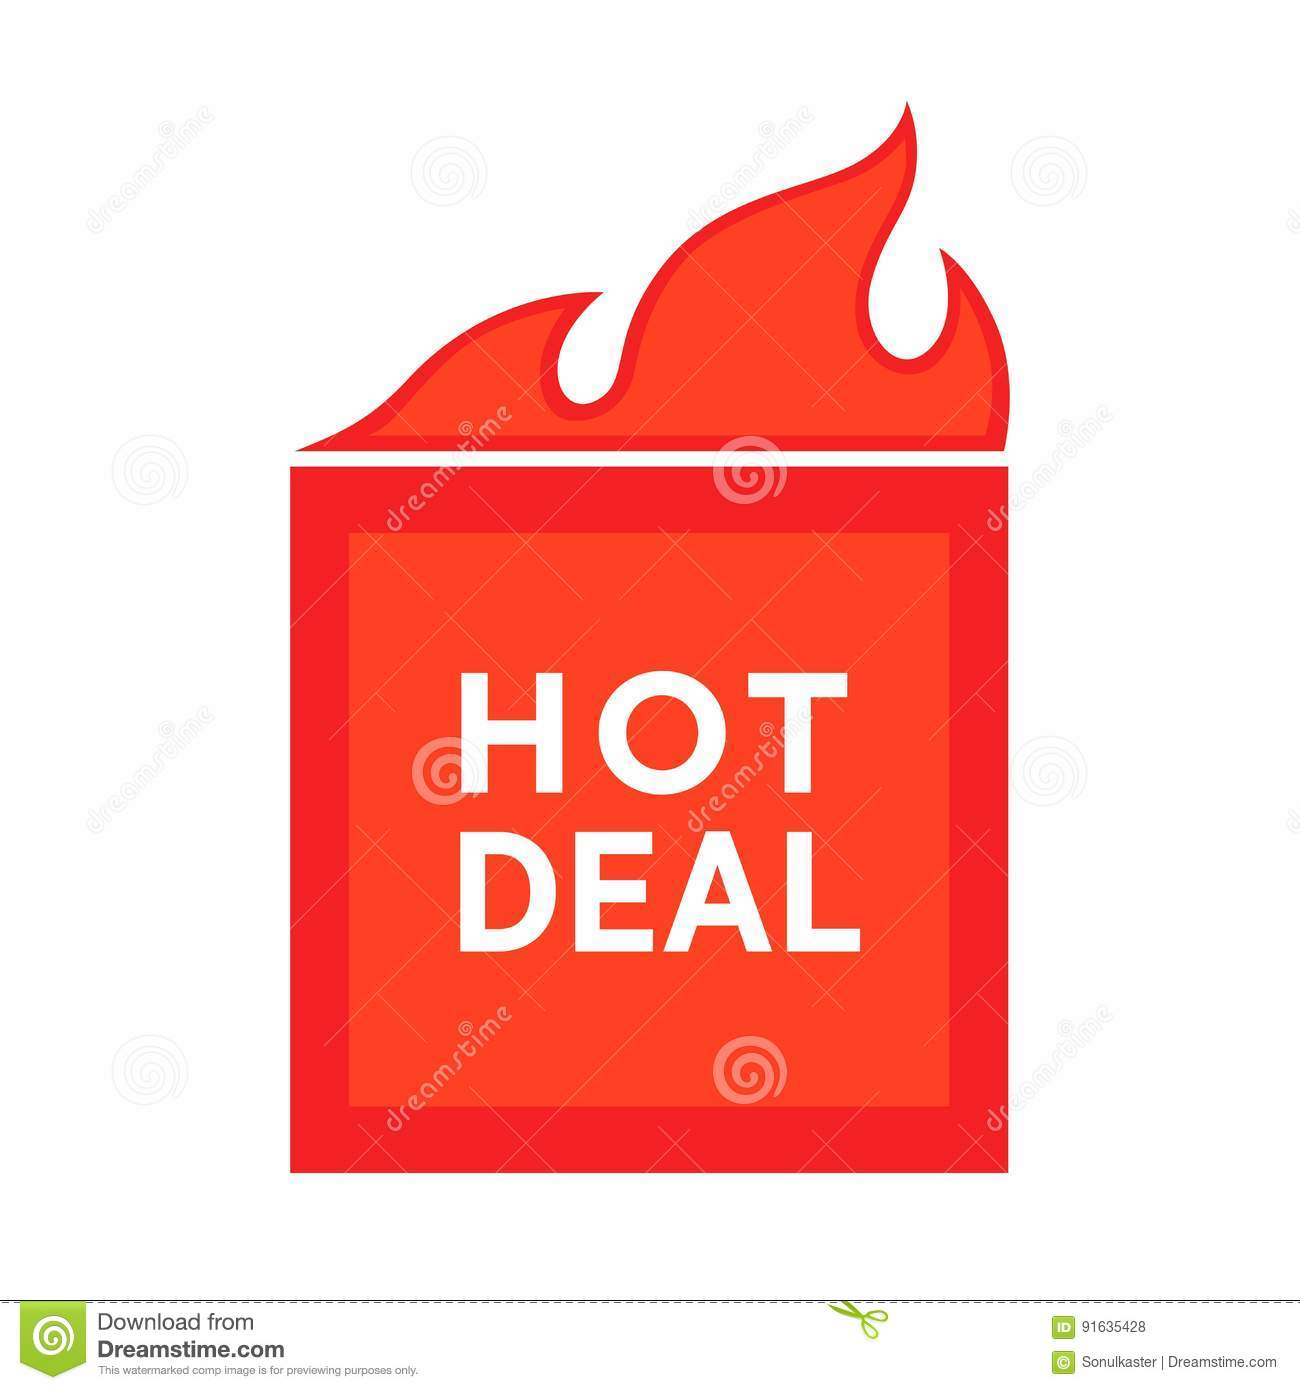 Poster design price - Hot Deal Advertising Poster Price Reduction Sticker With Burning Symbol Stock Vector